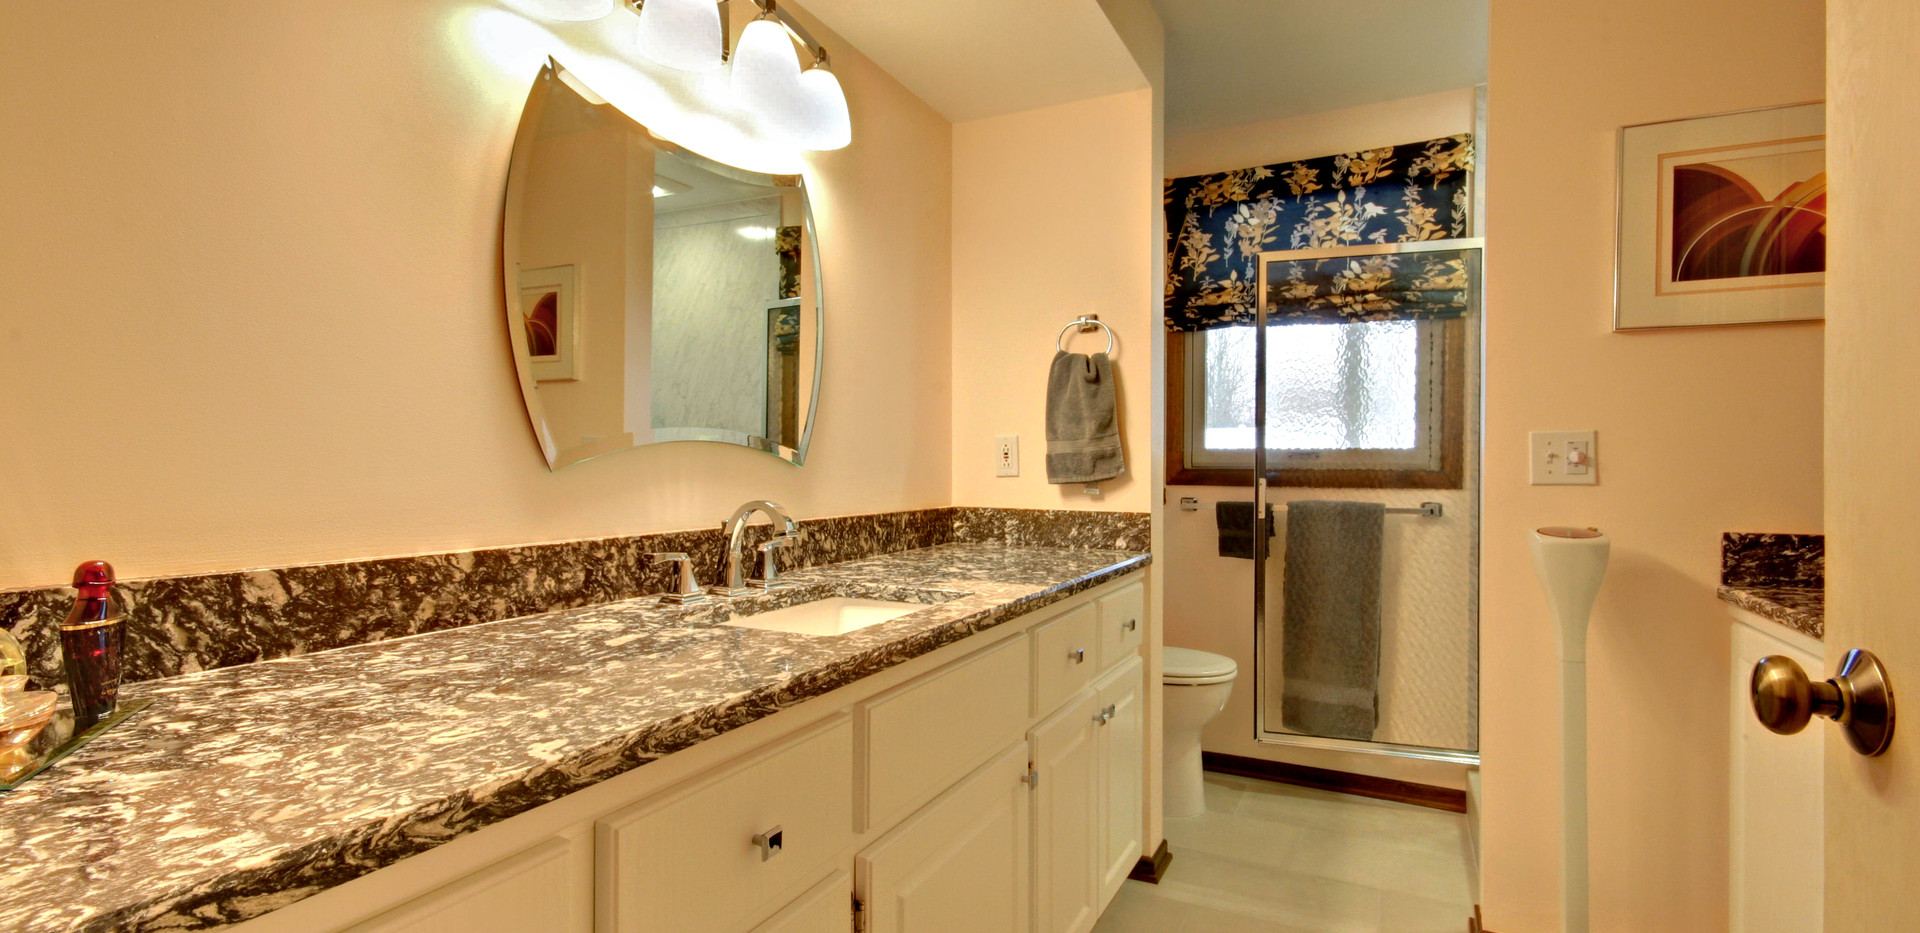 Grand Haven bathroom remodel by Renew Home Improvement bathroom remodeler